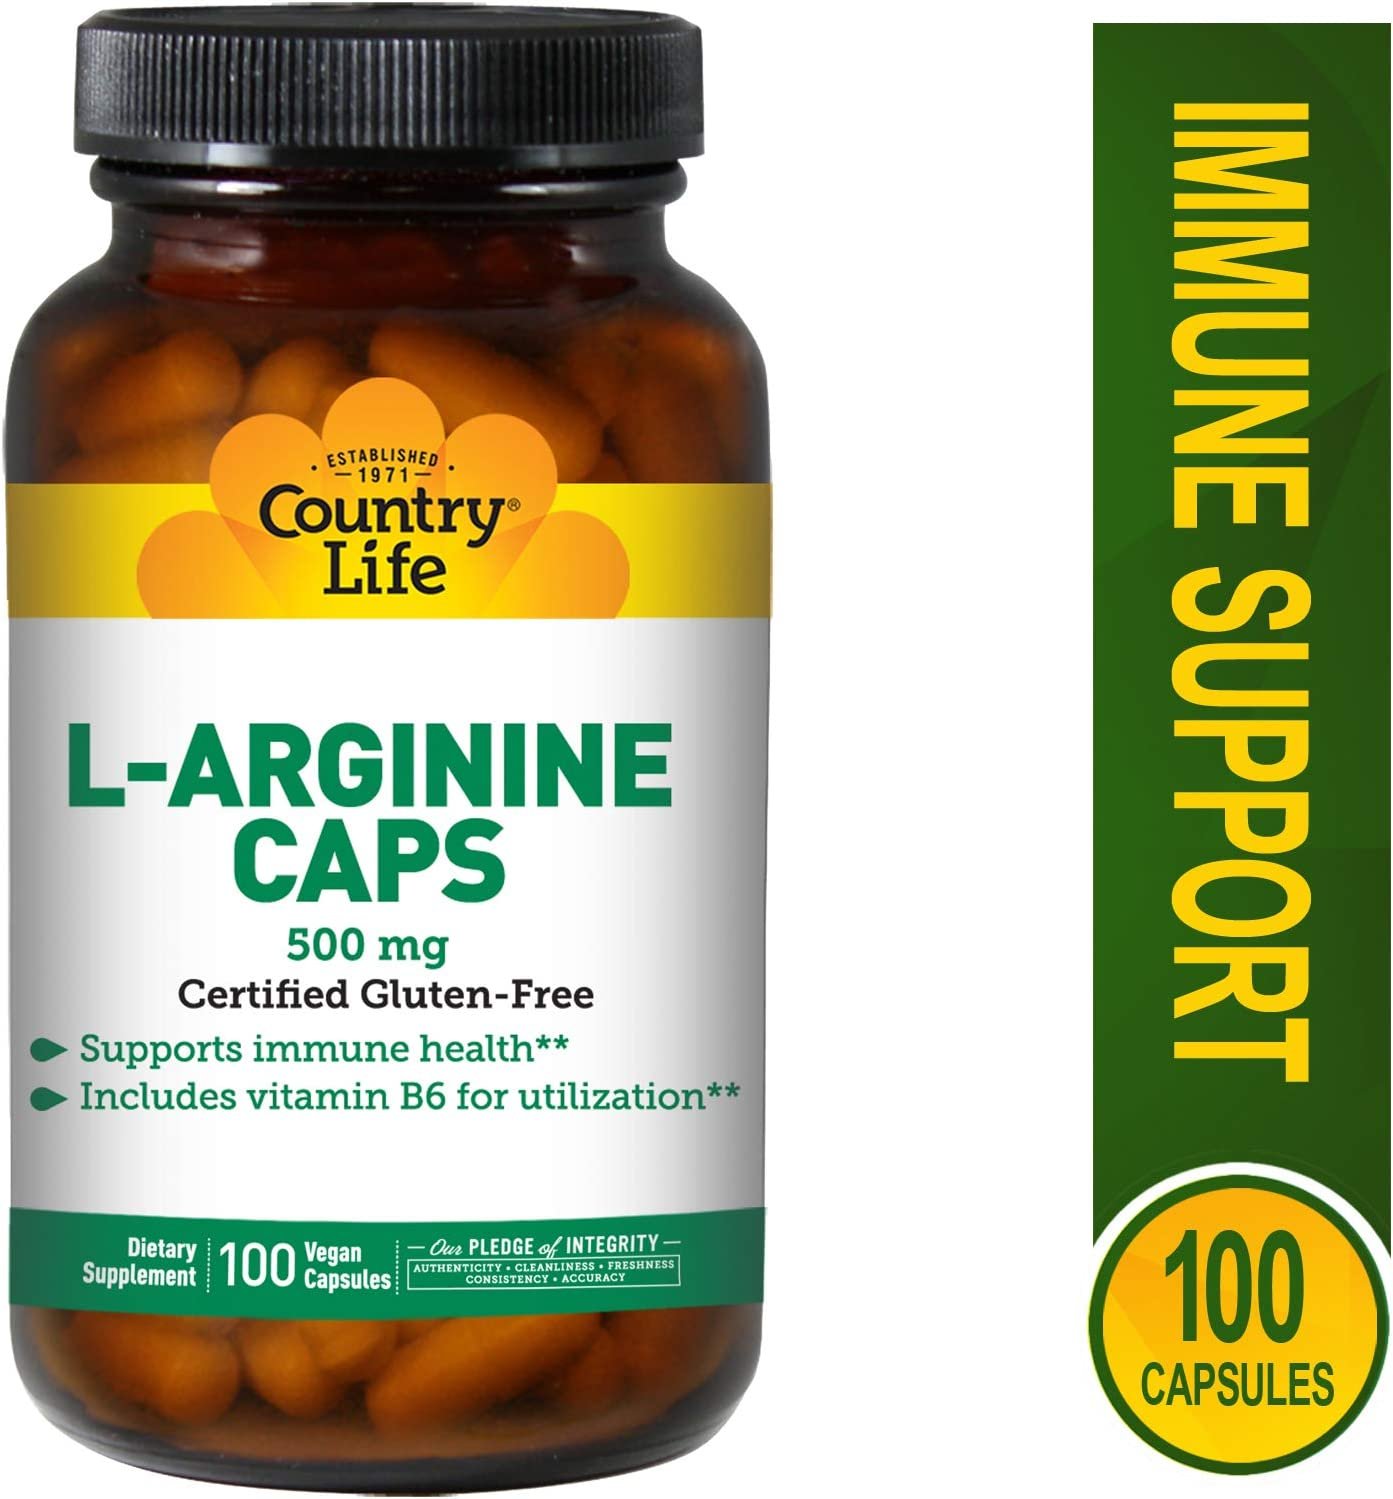 Country Life L-Arginine 500 mg with Vitamin B6 – 100 Vegetarian Capsules – May Help Support Immune Health – Aids Utilization – Gluten-Free